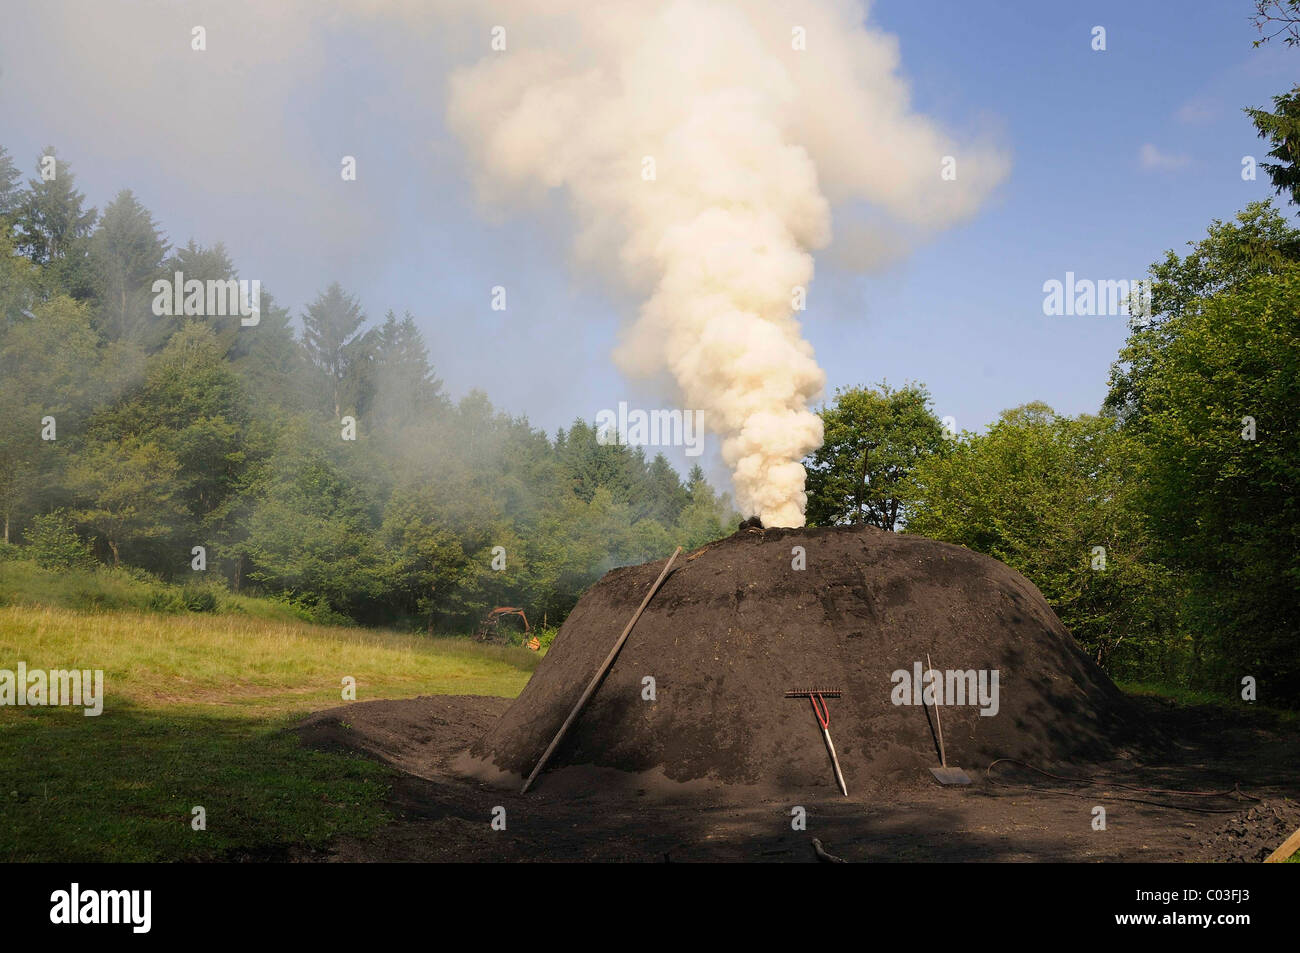 Smoking charcoal kiln, Walpersdorf, Kreis Siegen-Wittgenstein district, North Rhine-Westphalia, Germany, Europe - Stock Image